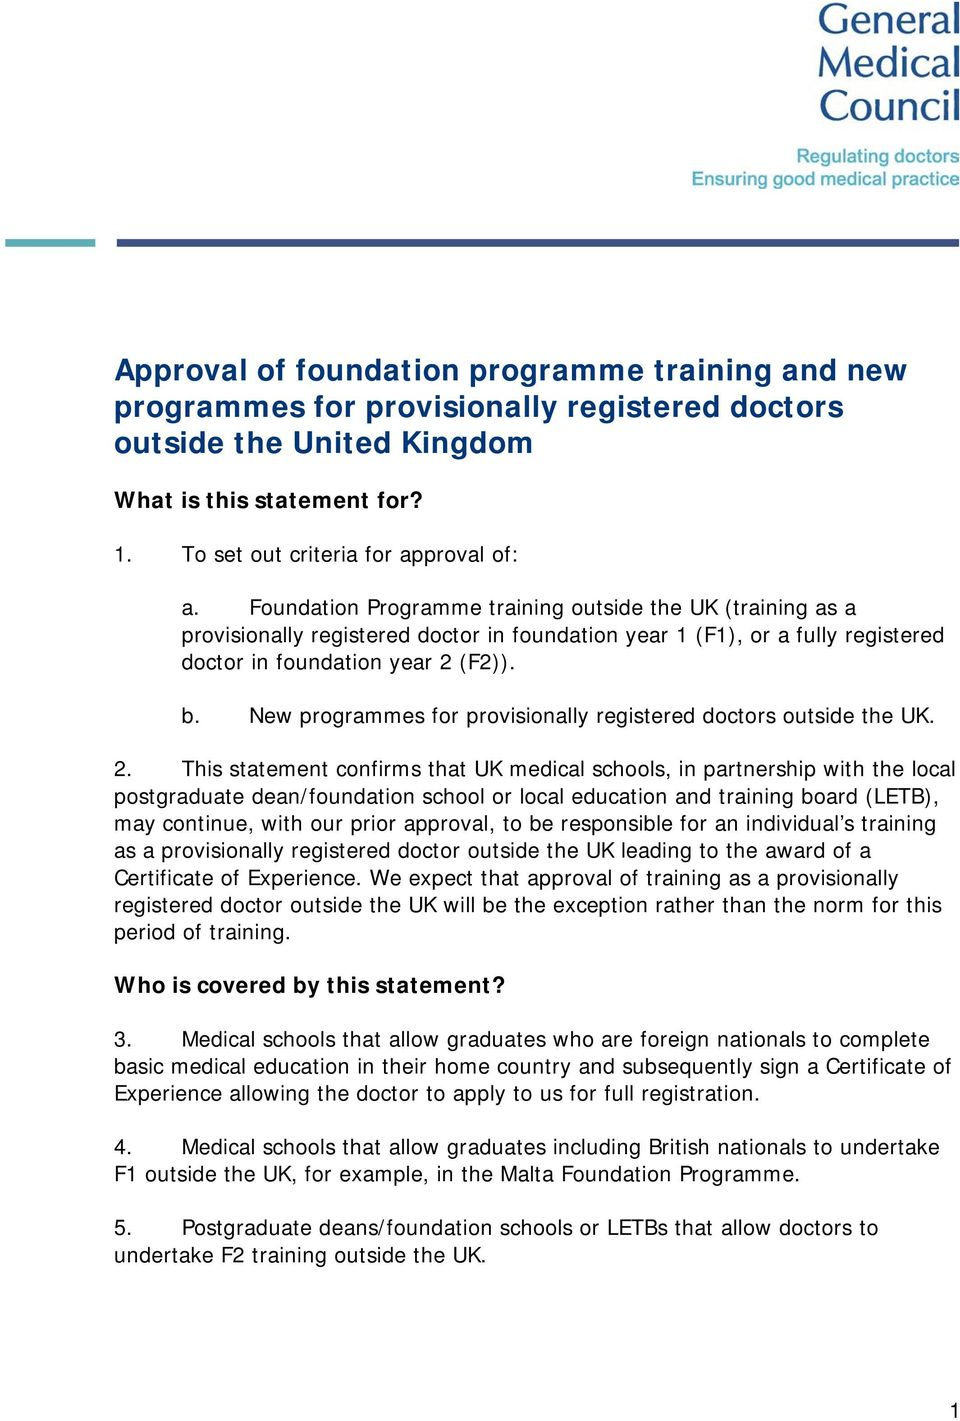 New programmes for provisionally registered doctors outside the UK. 2.